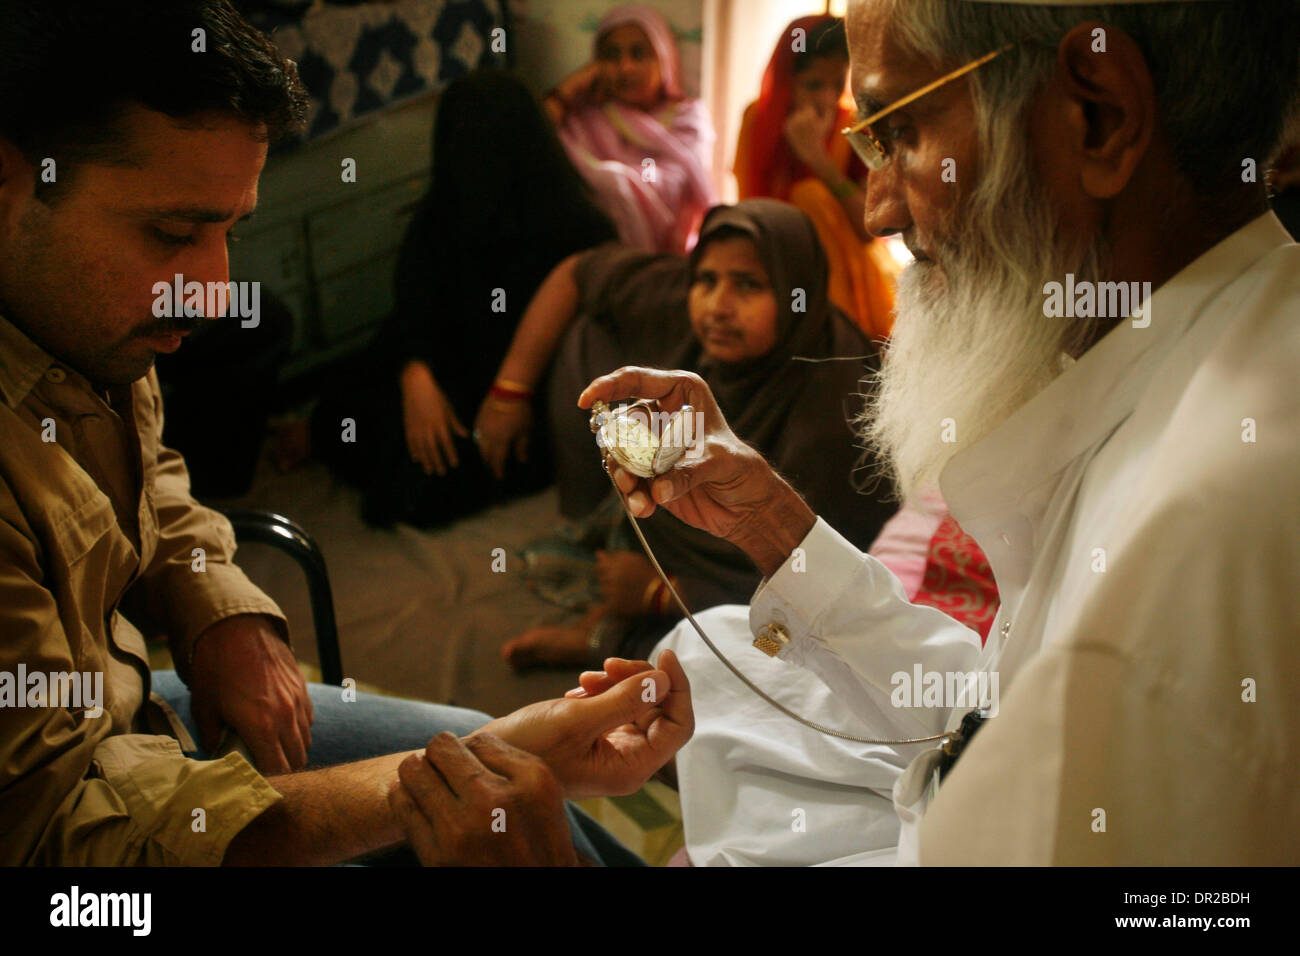 Jan. 12, 2009 - Amhedabad, India - A hakim takes the pulse of a man at his home in Ahmedabad, India.  A hakim is Stock Photo